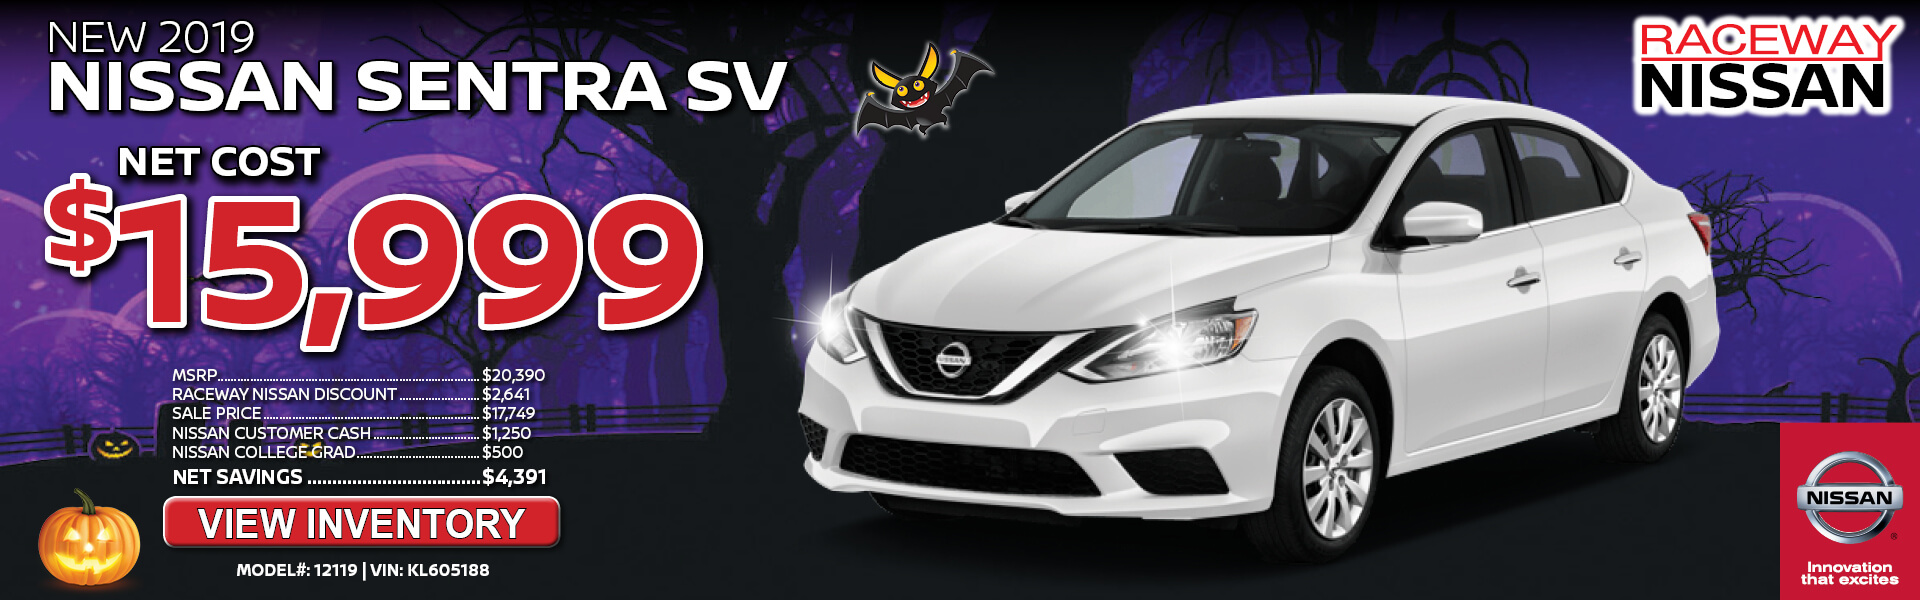 Nissan Sentra $15,999 Purchase